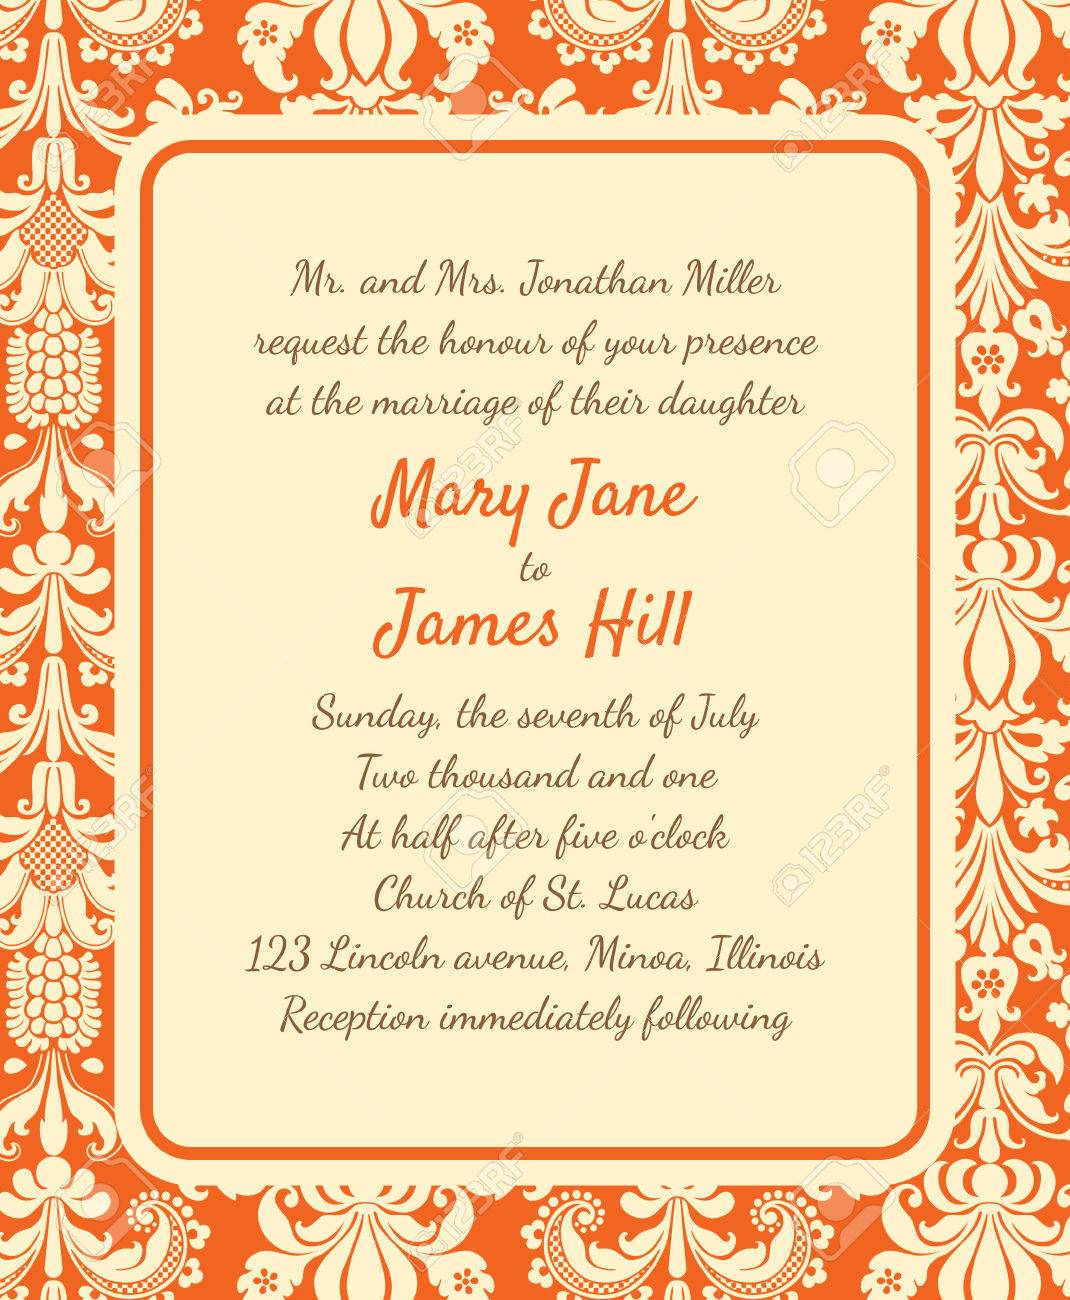 invitation a rich background in renaissance style template invitation a rich background in renaissance style template framework wedding invitations or announcements